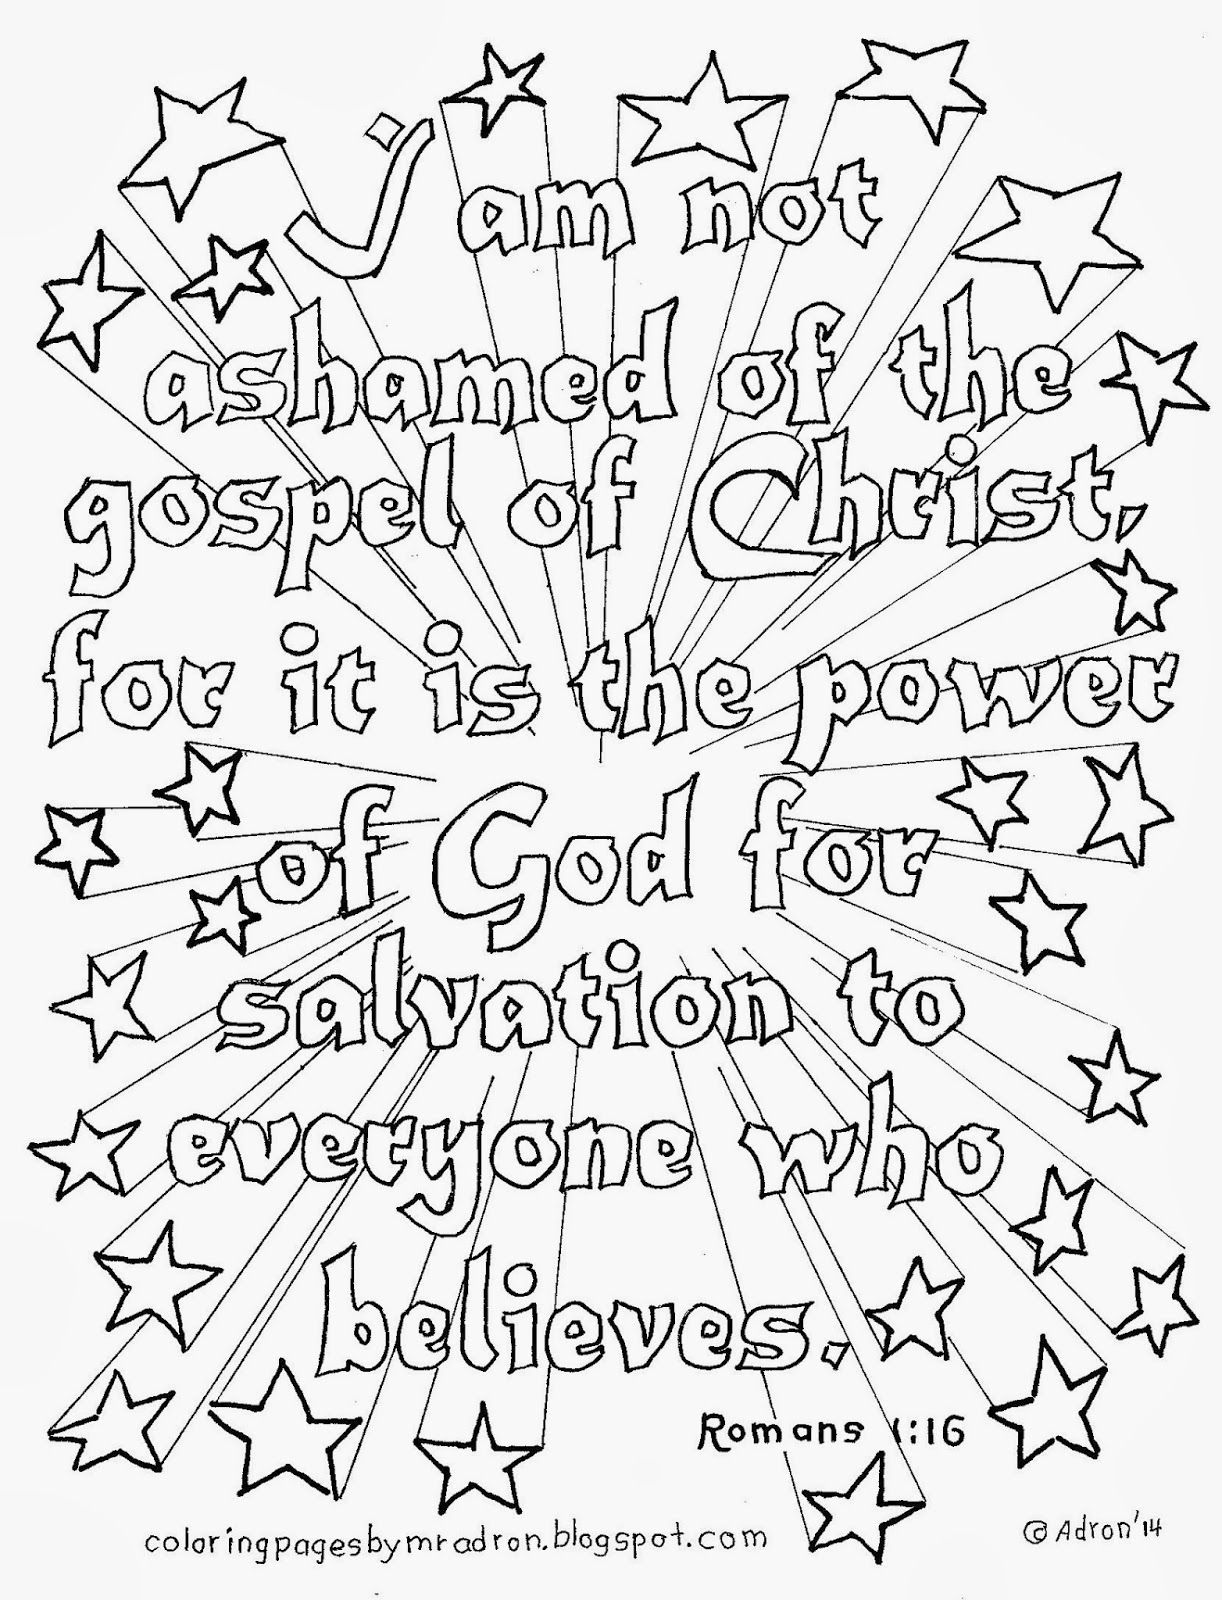 Romans 1:16 coloring page, see more at my blog. http